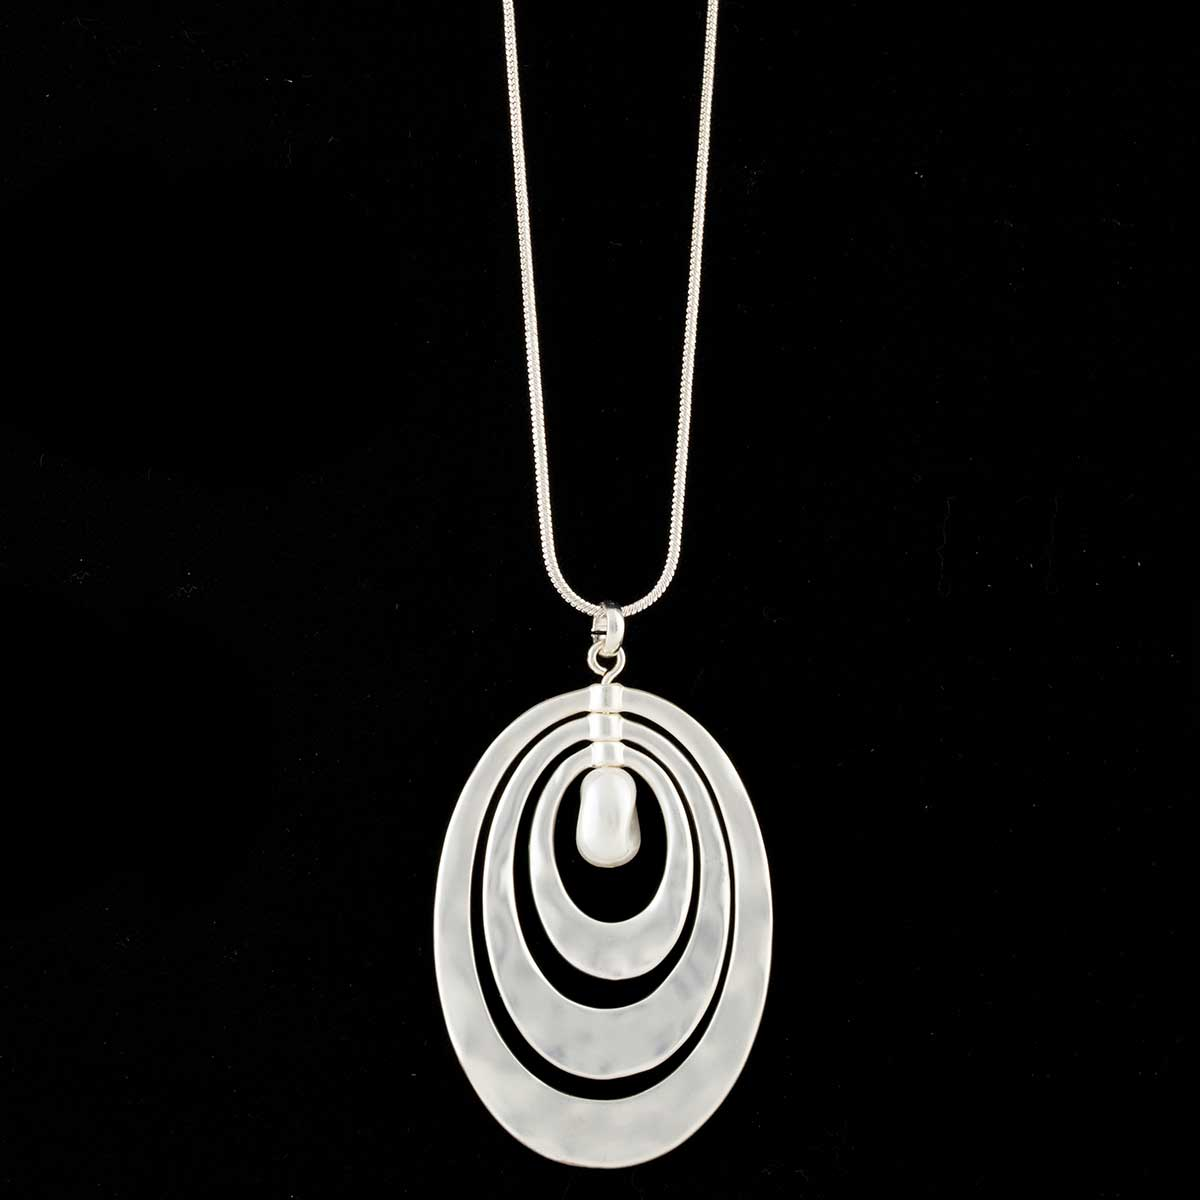 Satin Silver Triple Oval with Pearl Necklace on Chain